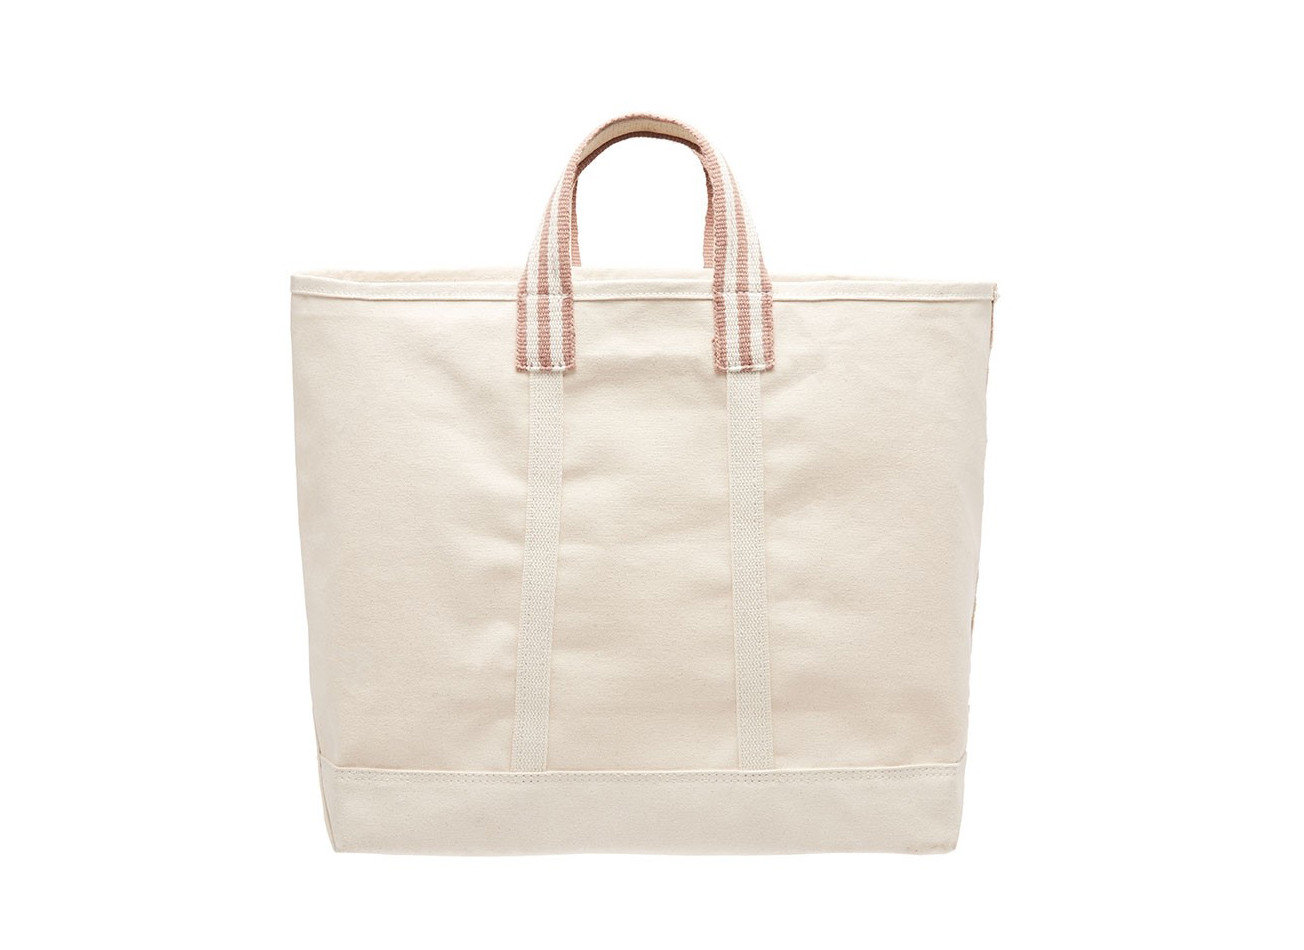 Style + Design white accessory handbag shoulder bag case bag beige product tote bag product design